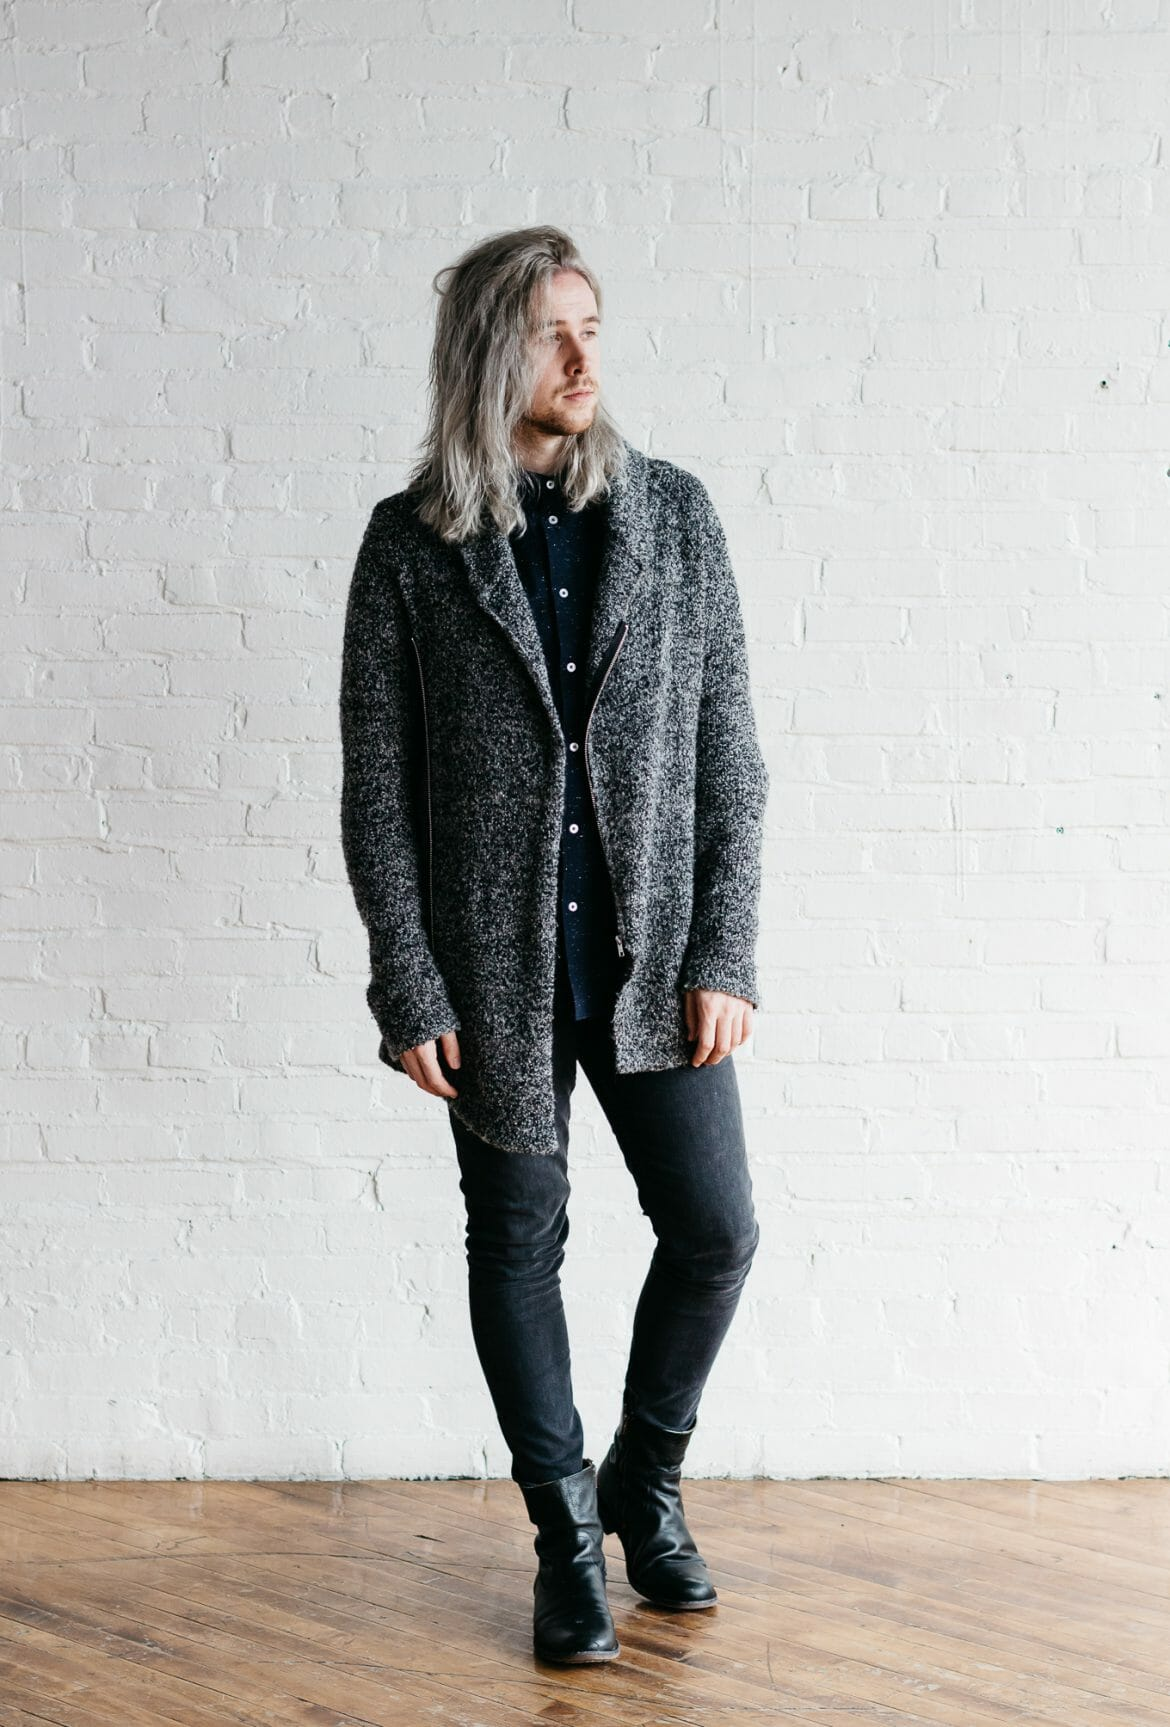 mens black and gray outfits, how to wear black and gray together, what to wear to fashion week